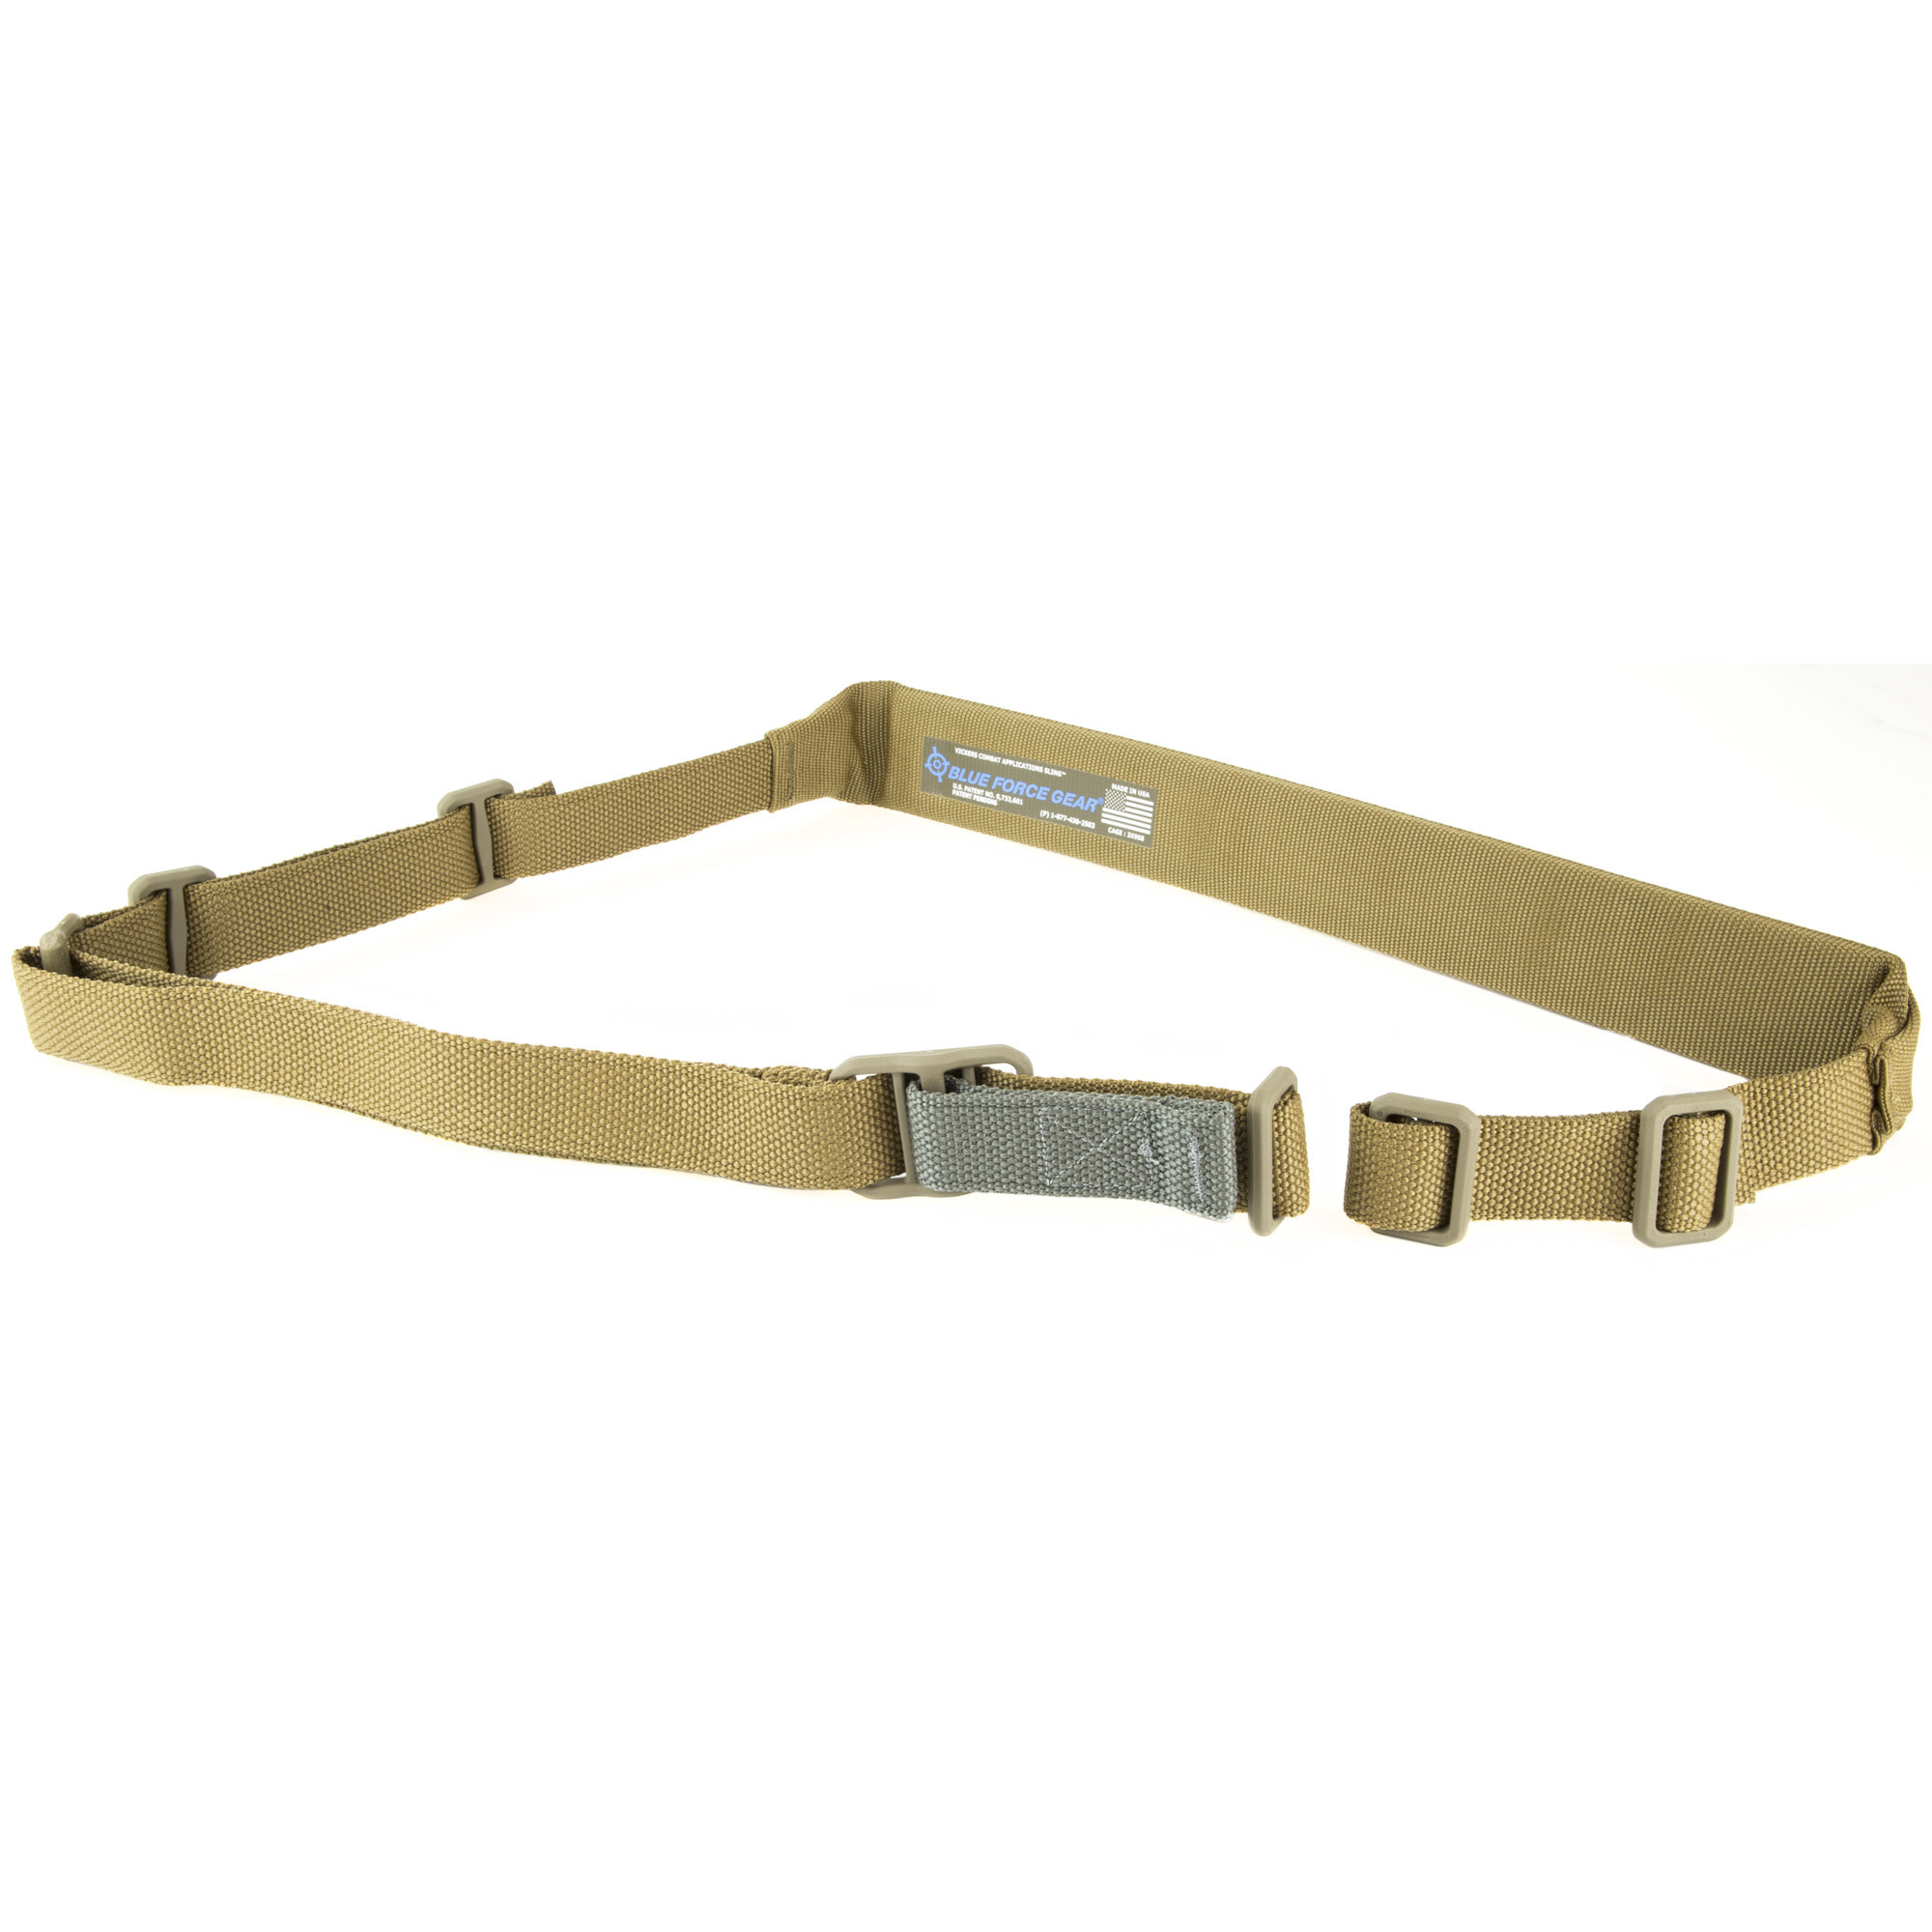 Blue Force Padded Vickers Combat Applications Sling, Coyote Brown